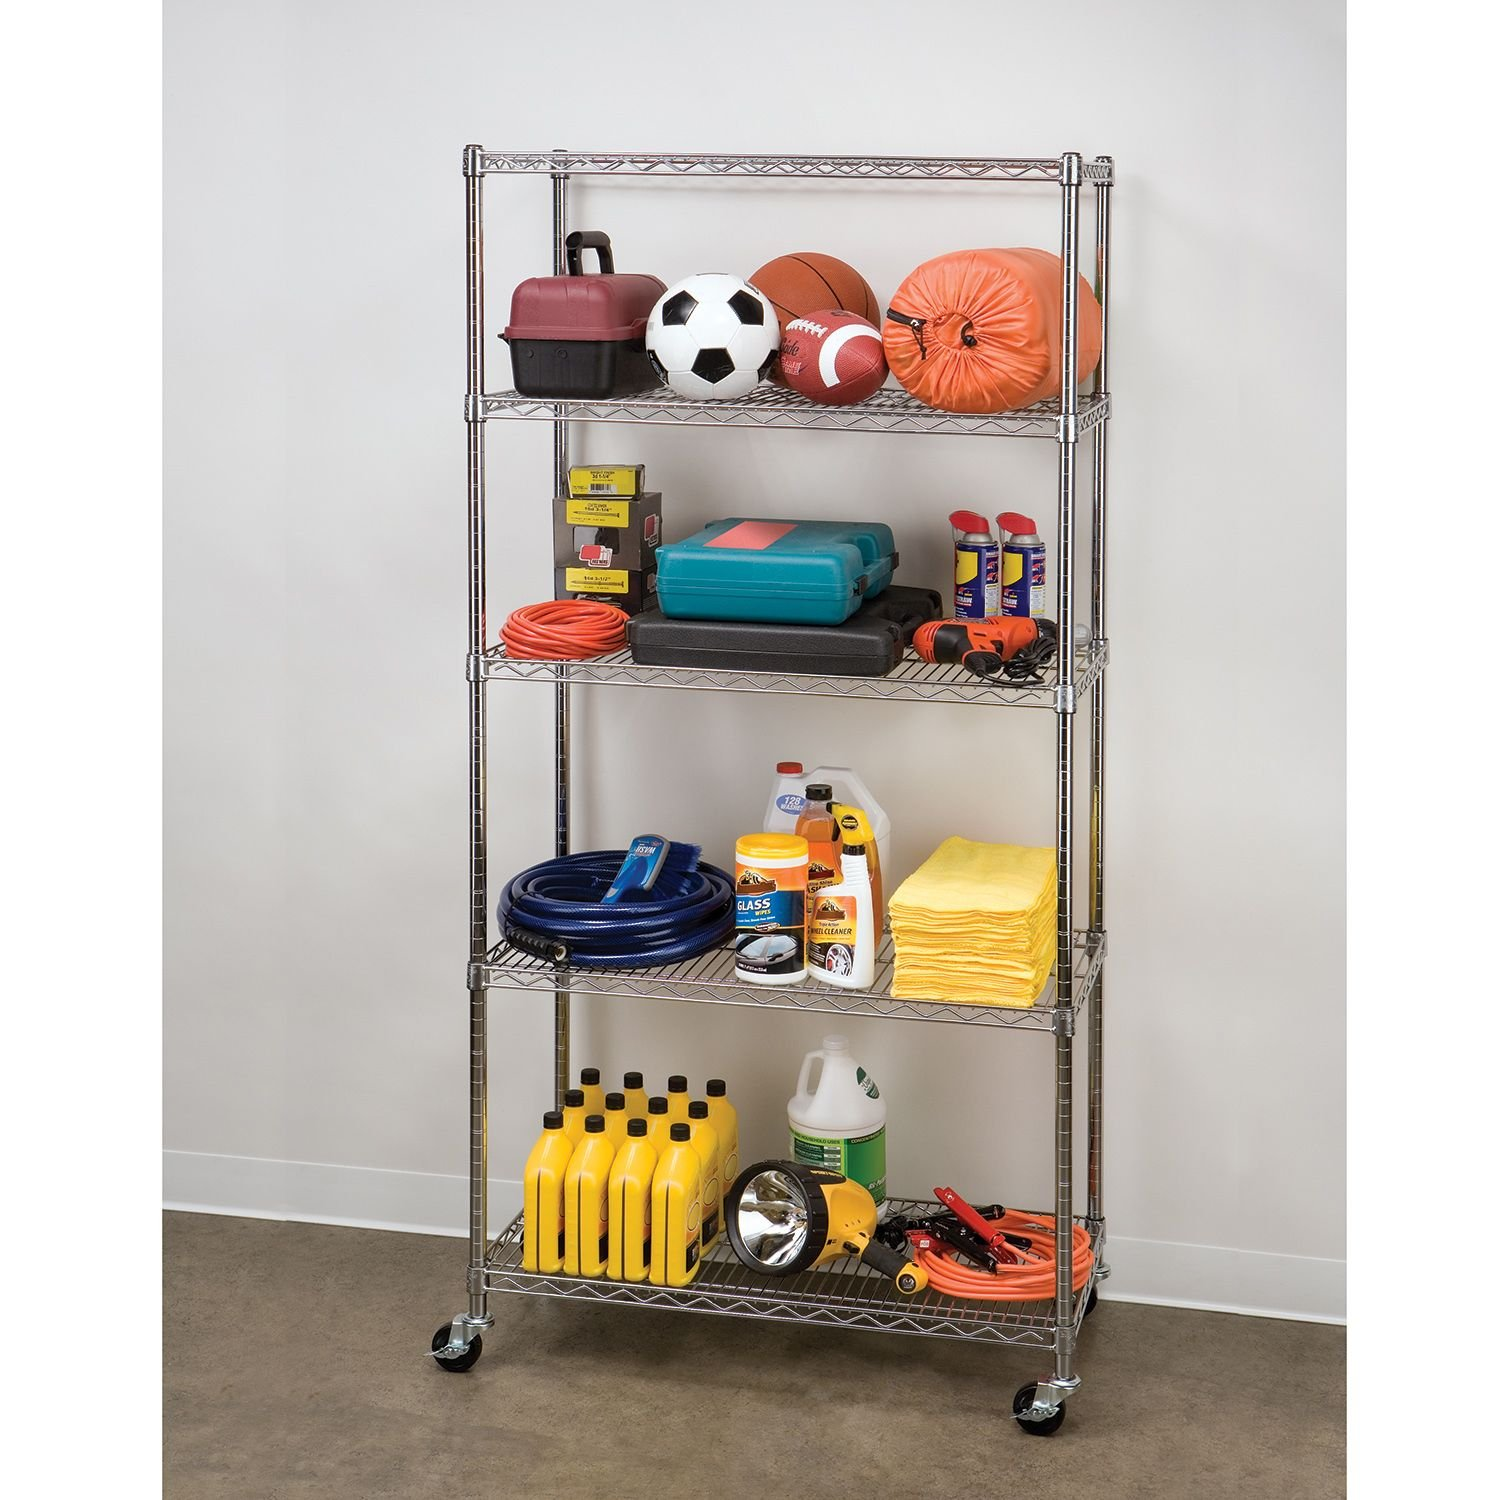 Seville Classics 5-Tier Commercial Shelving with Wheels by Seville Classics (Image #3)